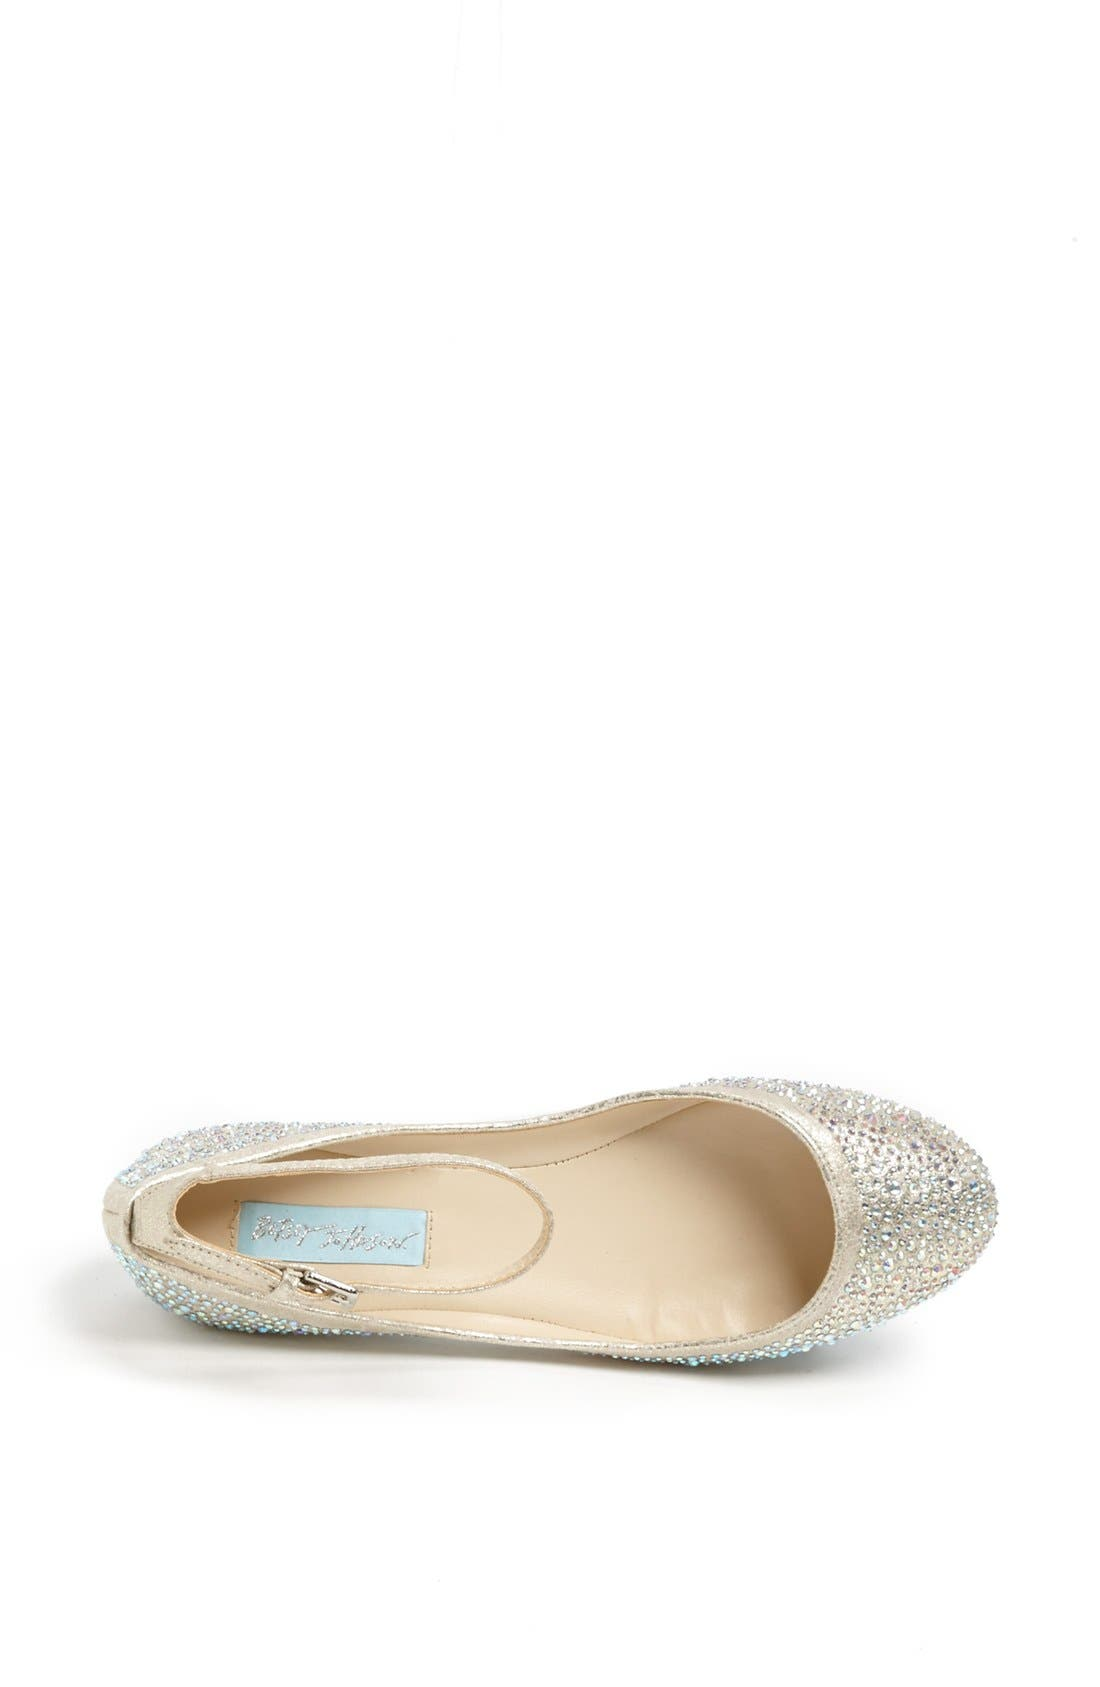 Alternate Image 3  - Betsey Johnson 'Joy' Ankle Strap Crystal Embellished Flat